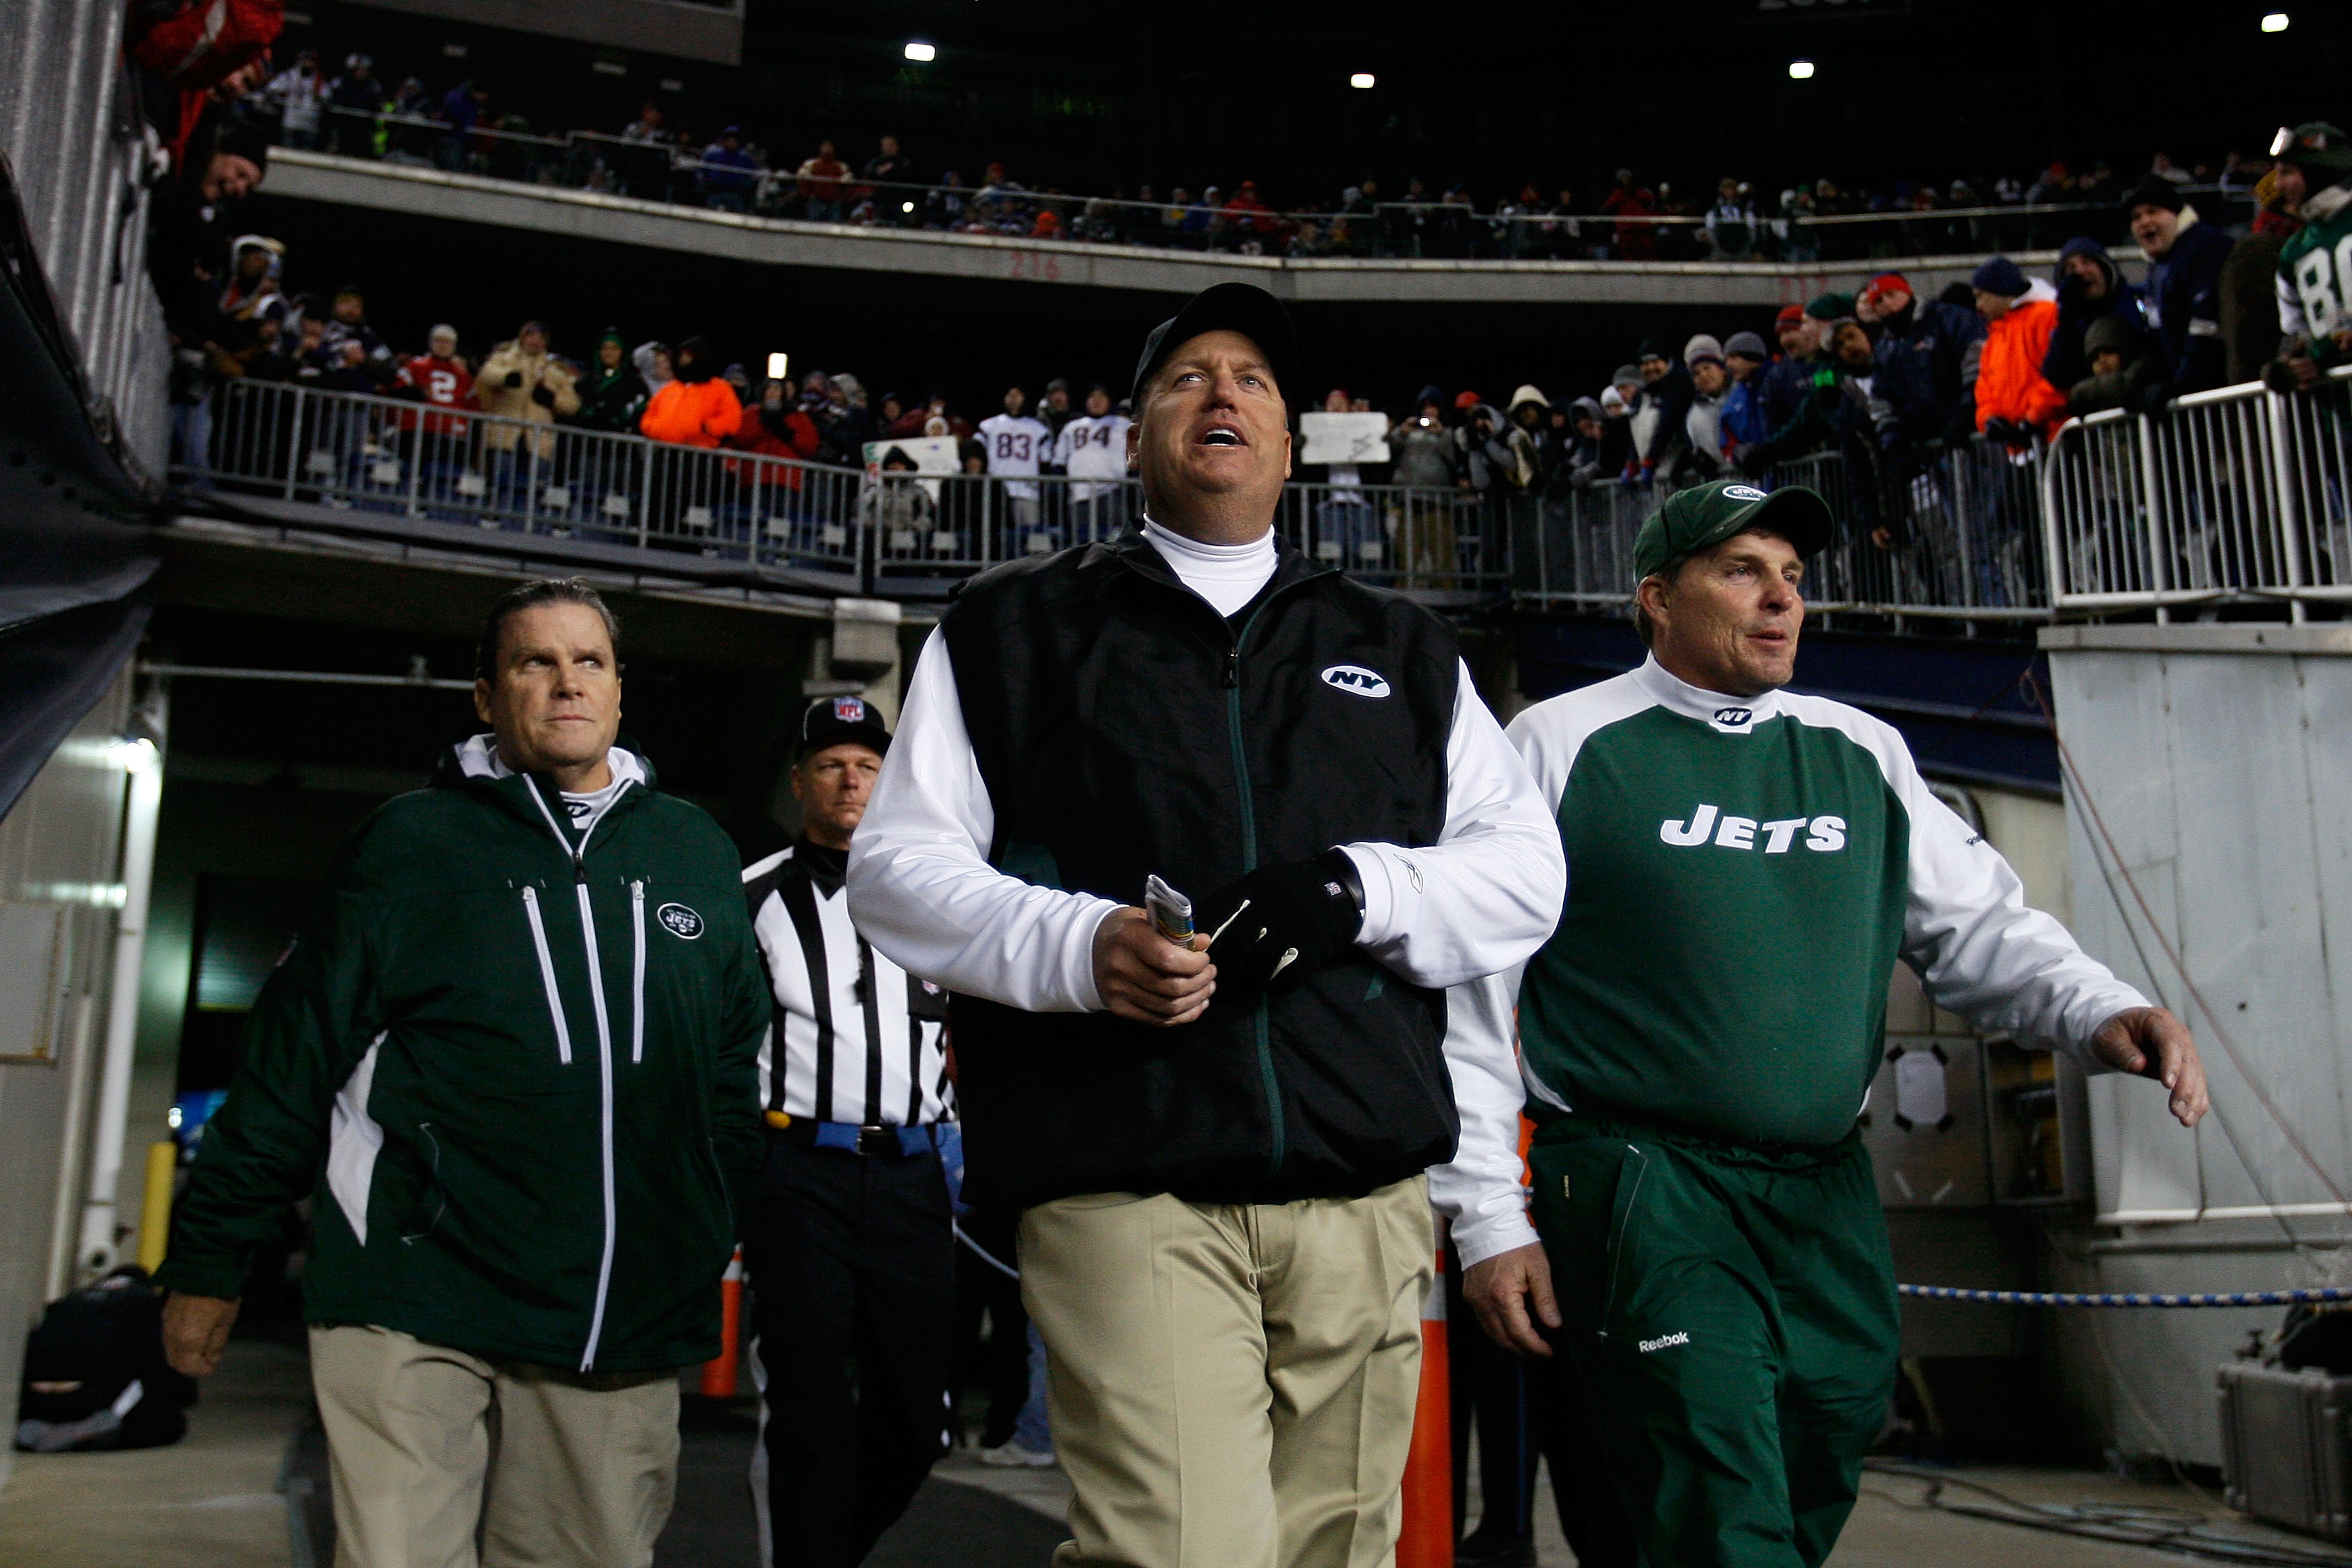 FOXBORO, MA - DECEMBER 06:  Head coach Rex Ryan of the New York Jets walks on the field for the start of their game against the New England Patriots at Gillette Stadium on December 6, 2010 in Foxboro, Massachusetts.  (Photo by Jim Rogash/Getty Images)